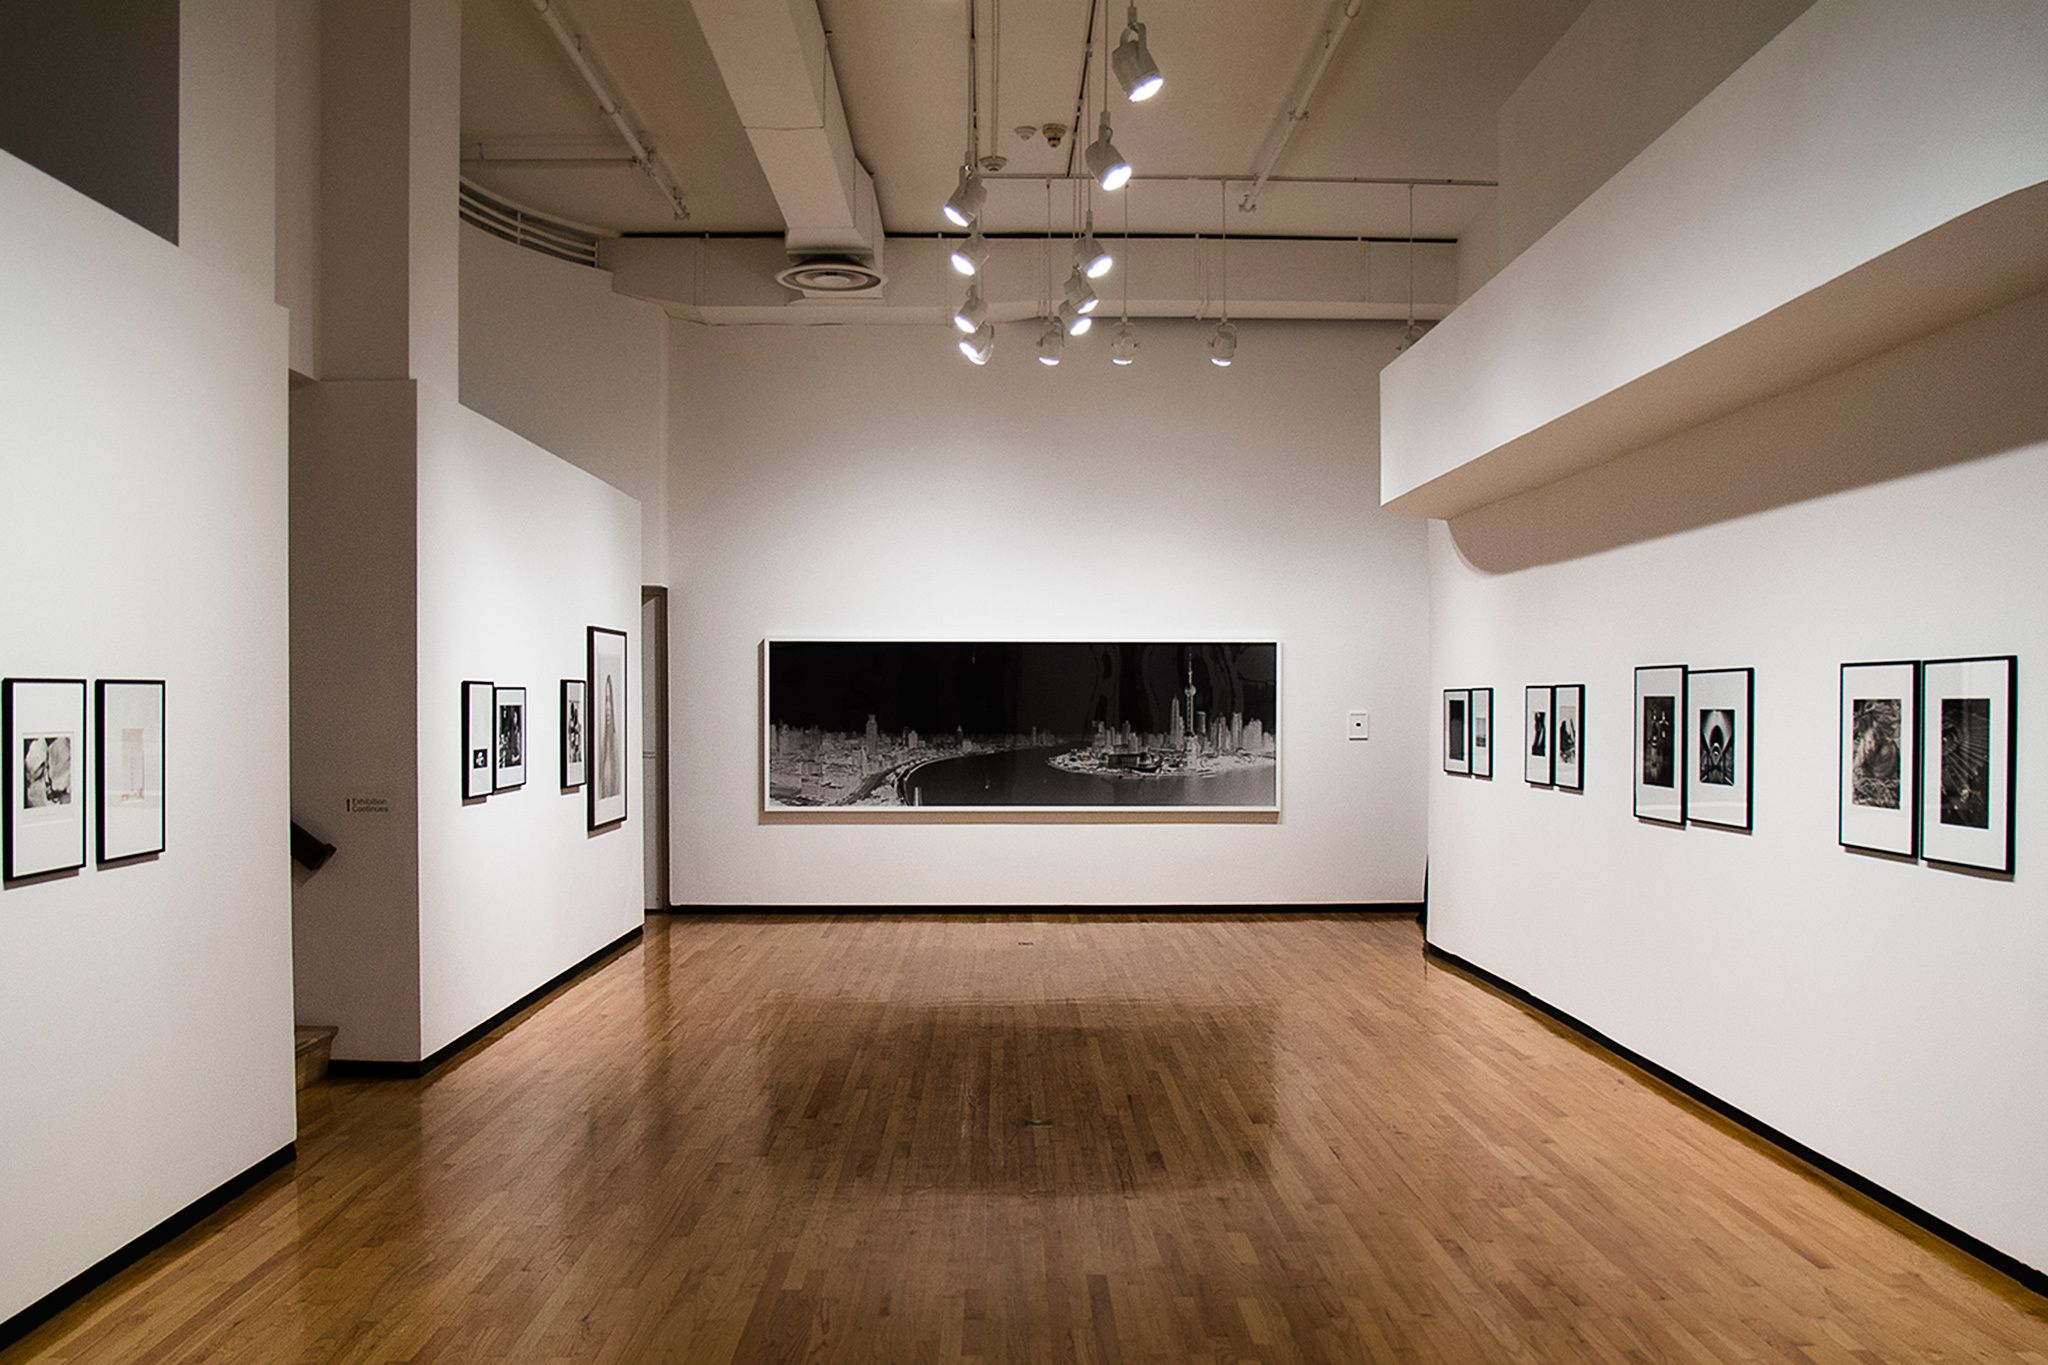 The Best Free Art Museums And Galleries Art Museum Contemporary Museum Chicago Museums